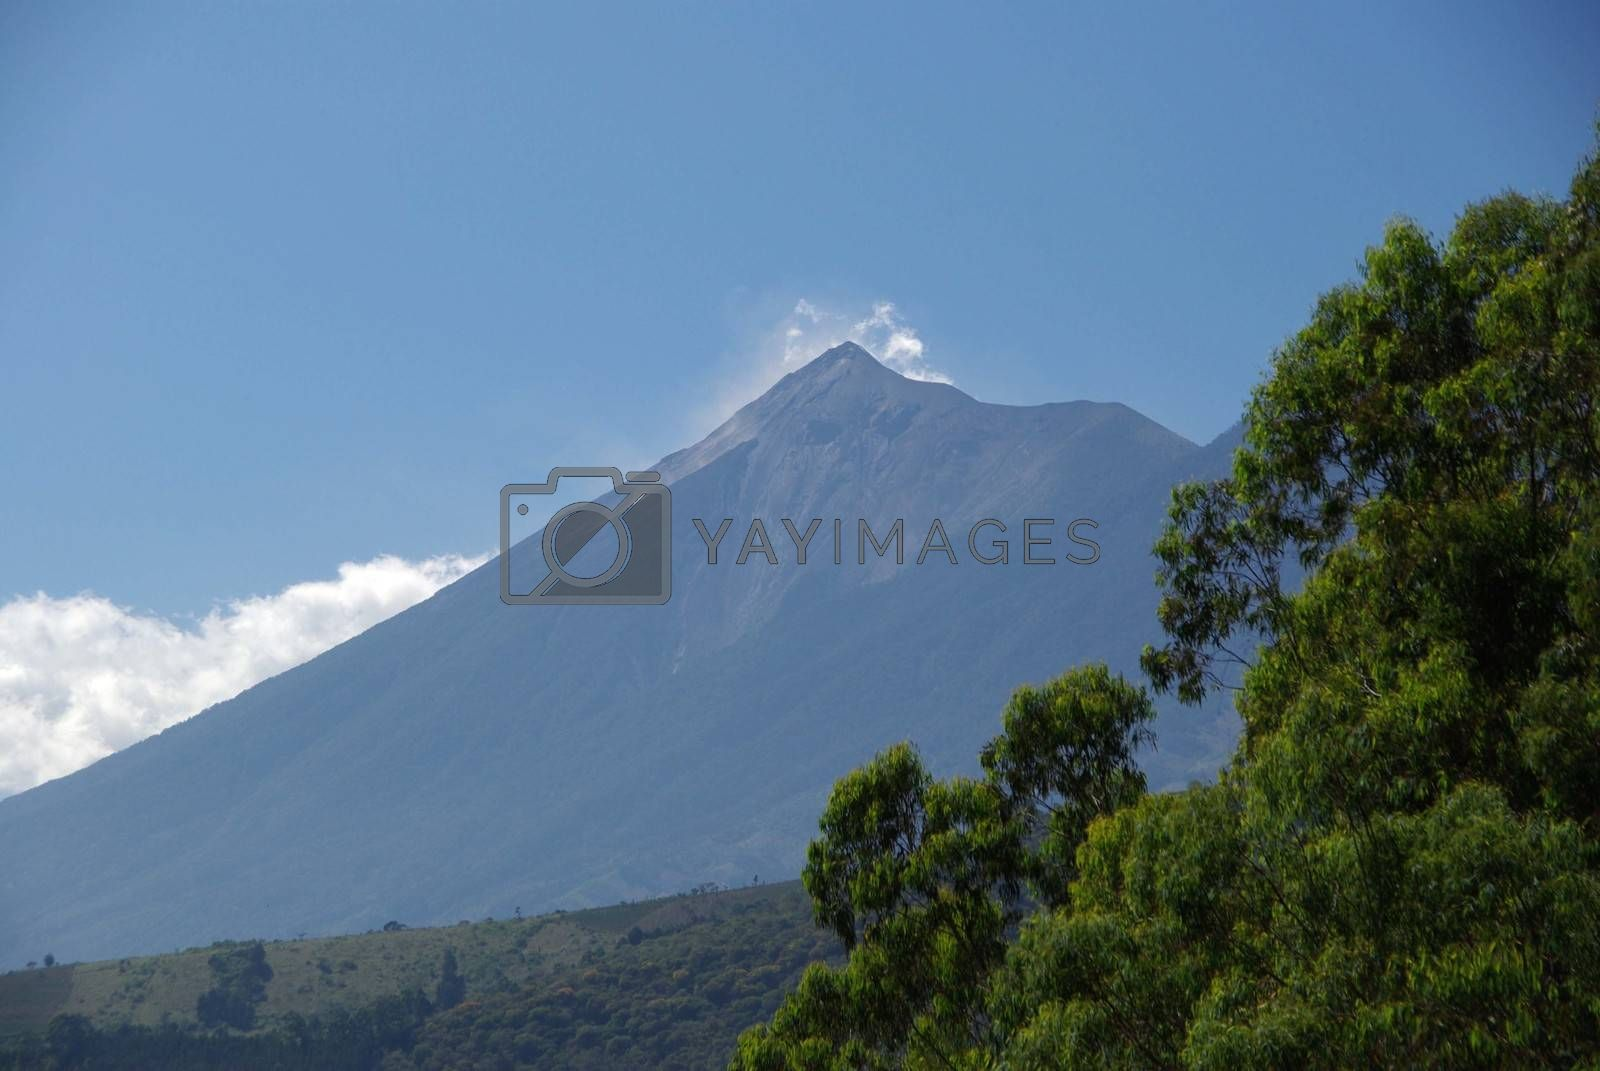 Royalty free image of Volcano in Guatemala by pascalou95